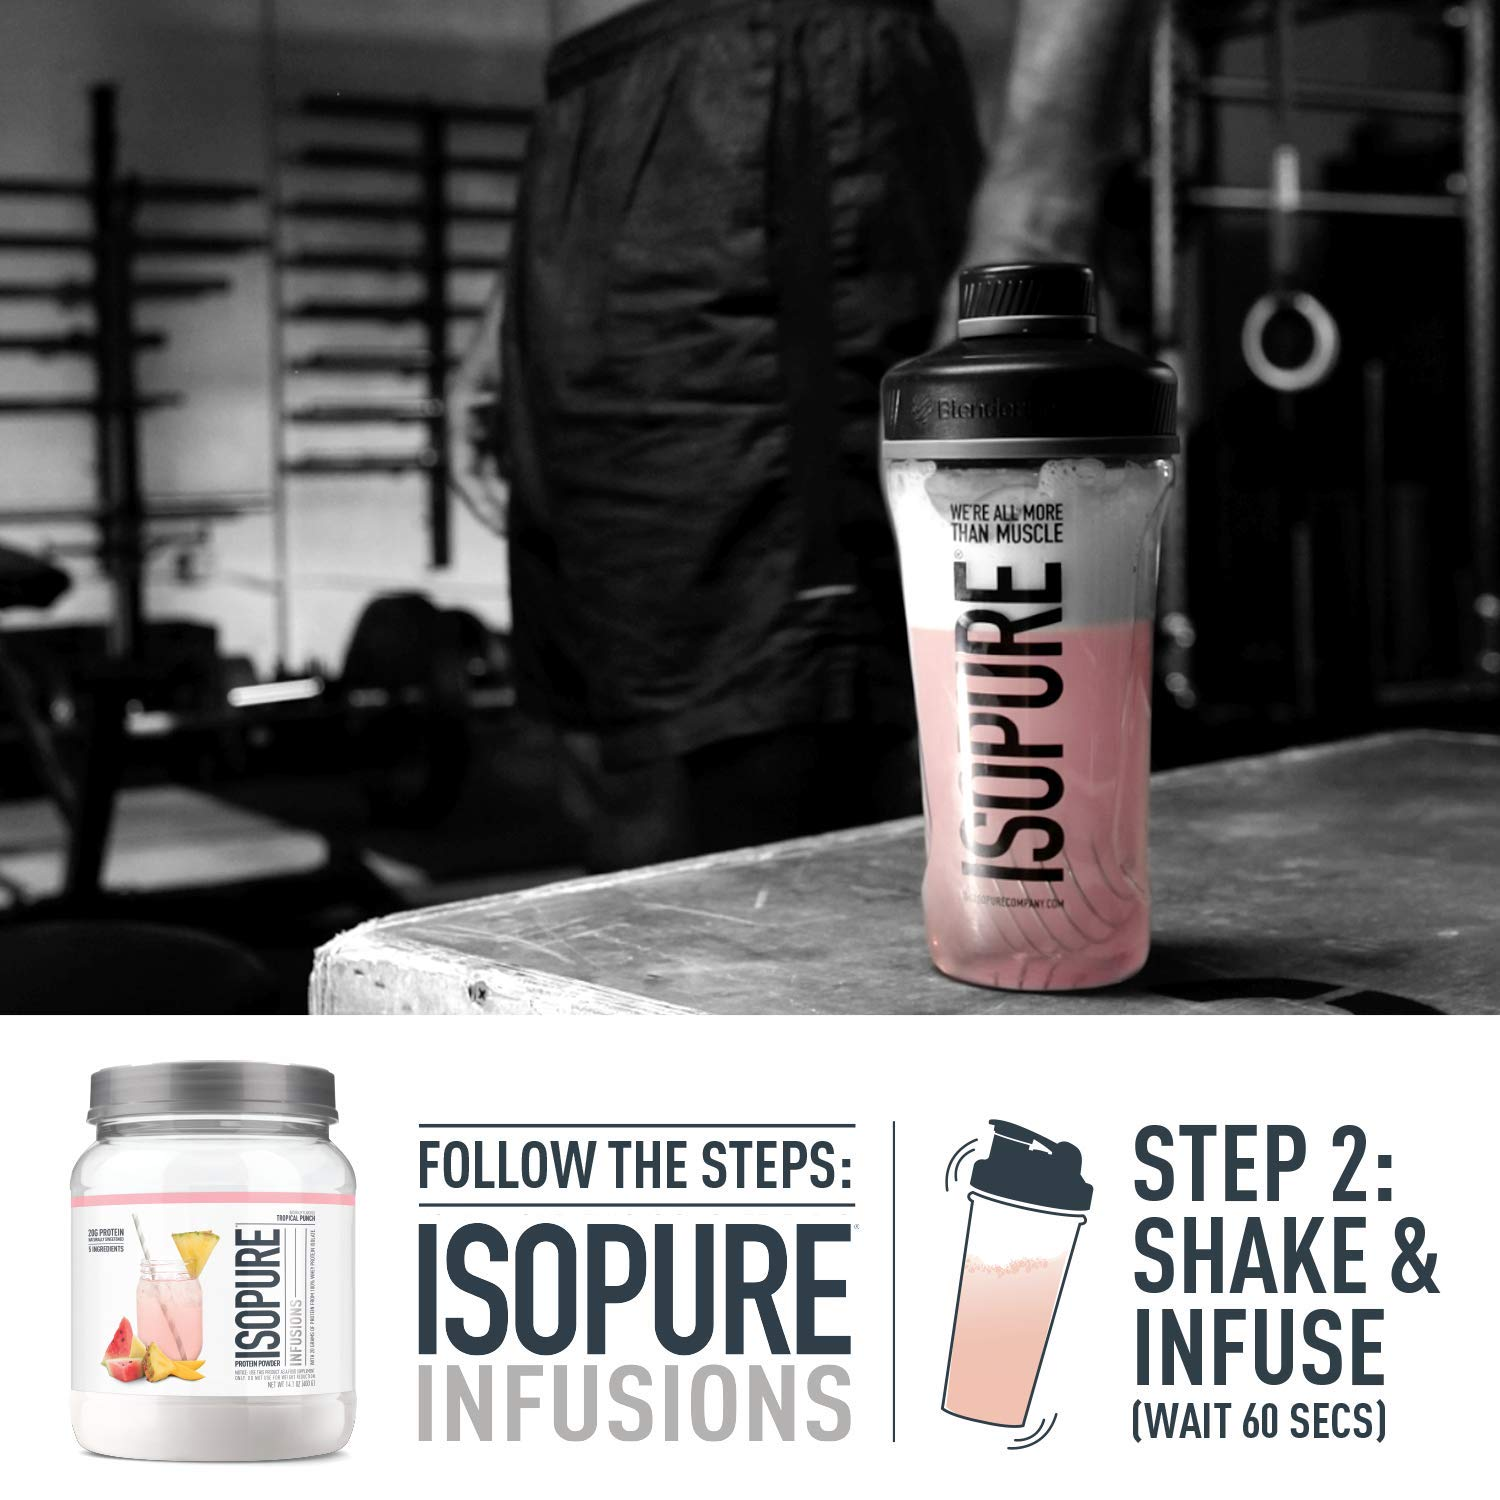 ISOPURE INFUSIONS, Refreshingly Light Fruit Flavored Whey Protein Isolate Powder, ''Shake Vigorously & Infuses in a Minute'', Citrus Lemonade, 16 Servings by Isopure (Image #4)